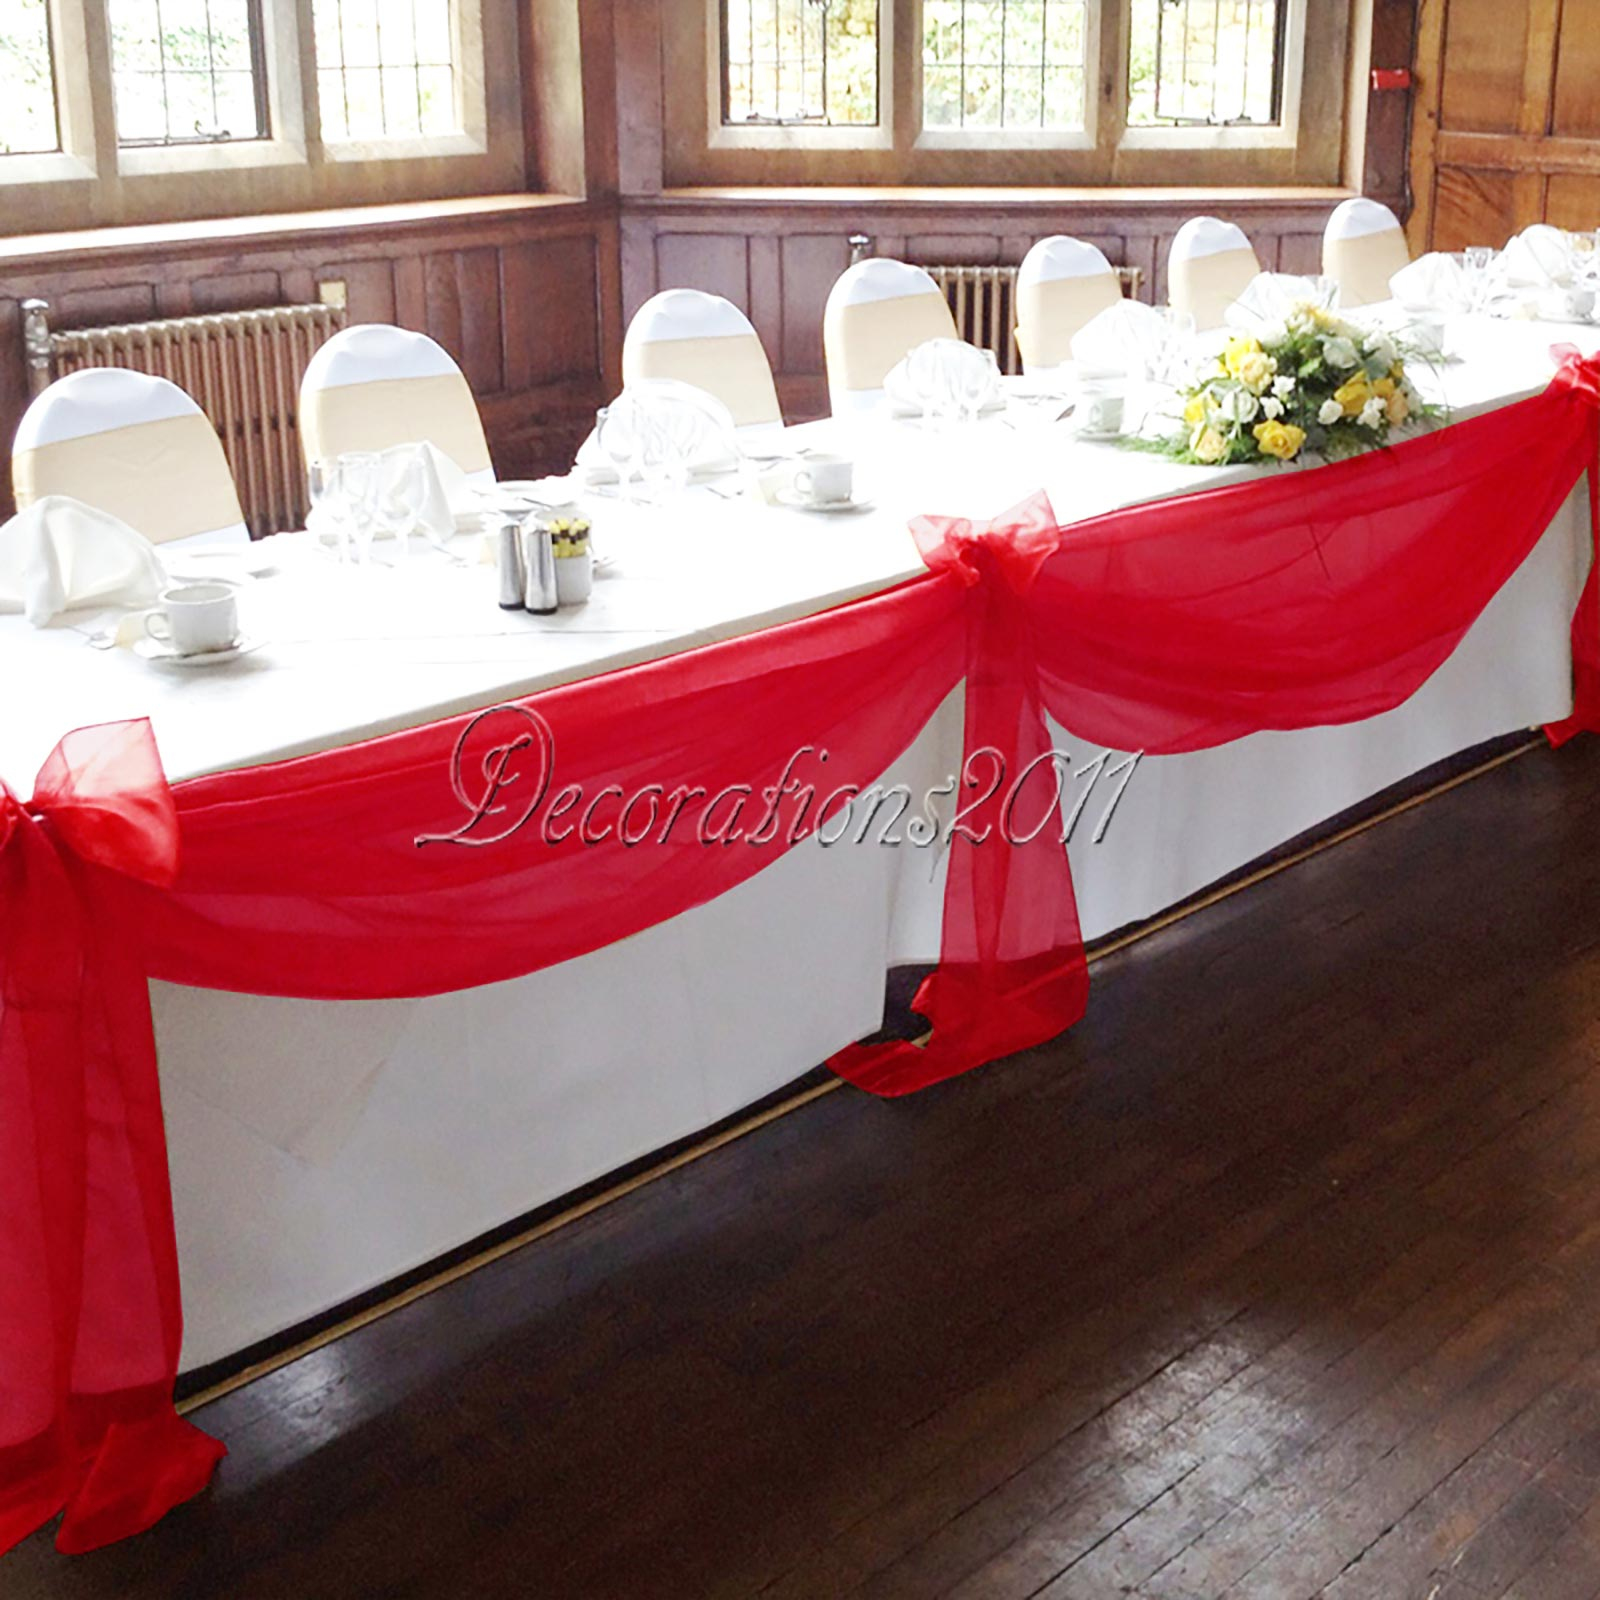 Best Diy Wedding: 5M*1.35M Top Table Swags Sheer Organza Fabric DIY Wedding